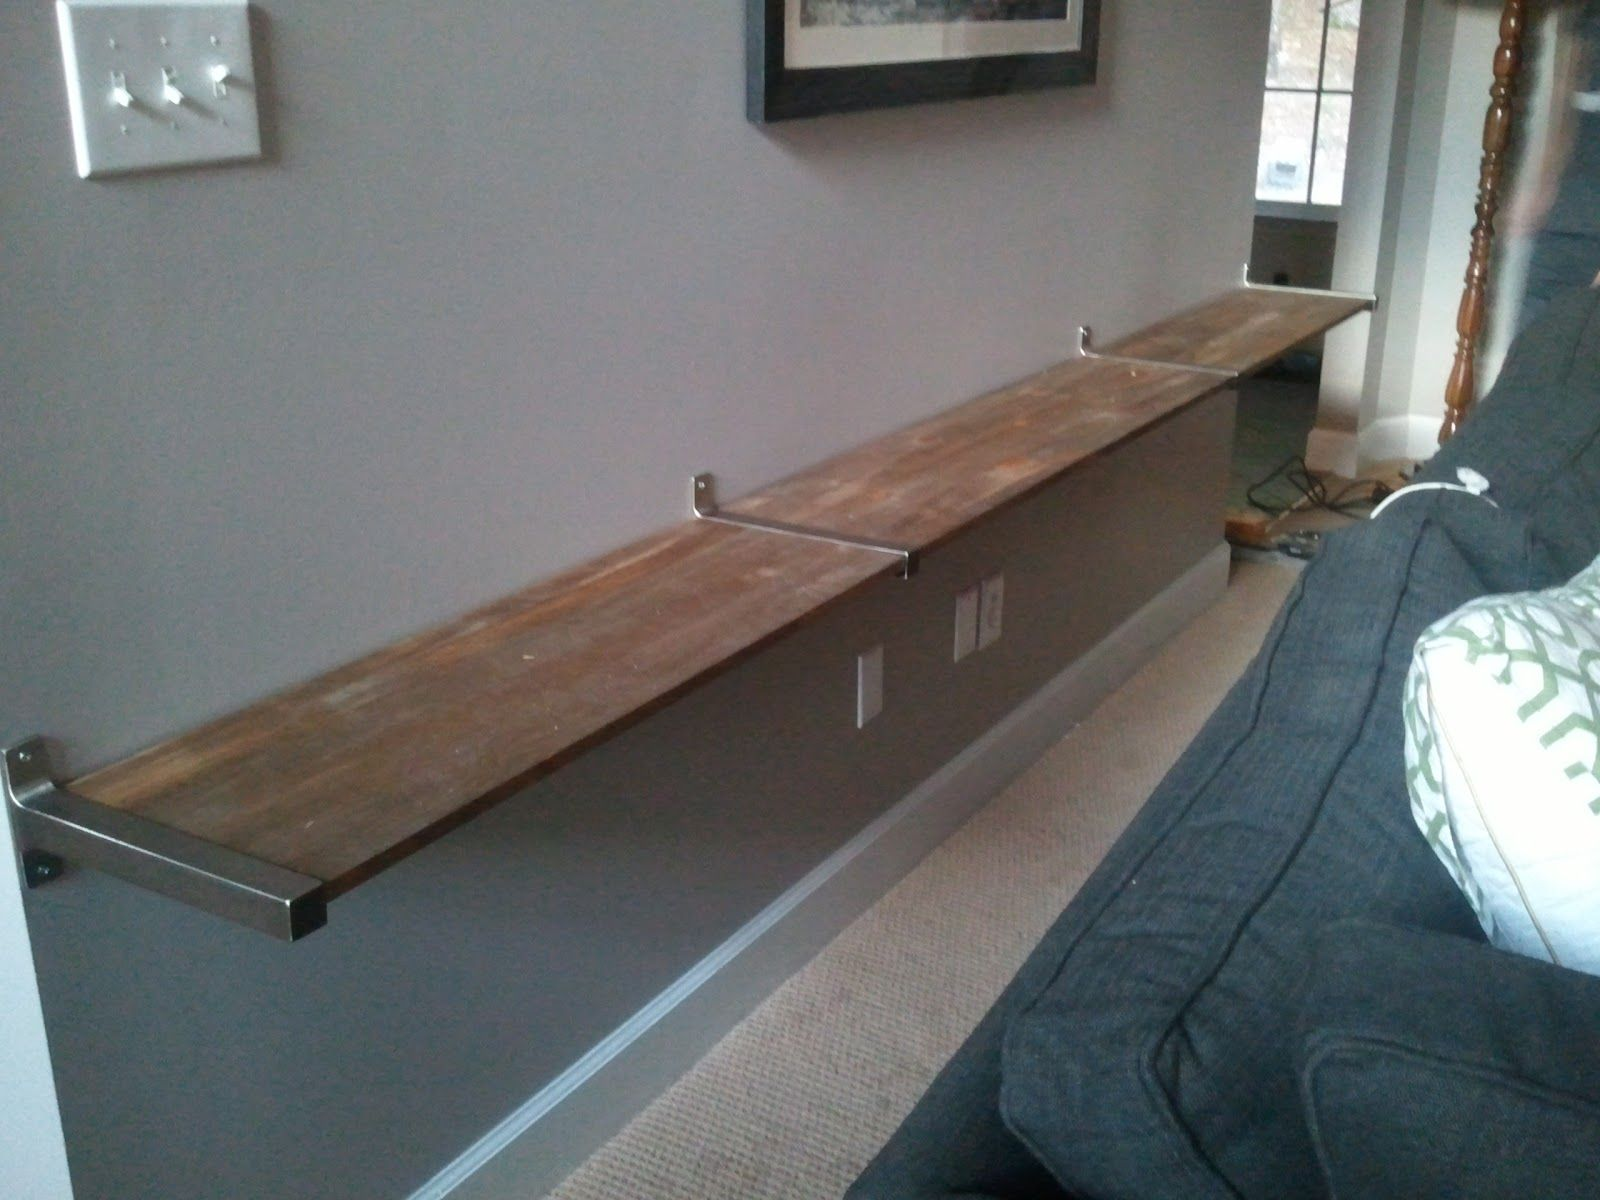 94 best couch table images on pinterest | woodworking, carpentry